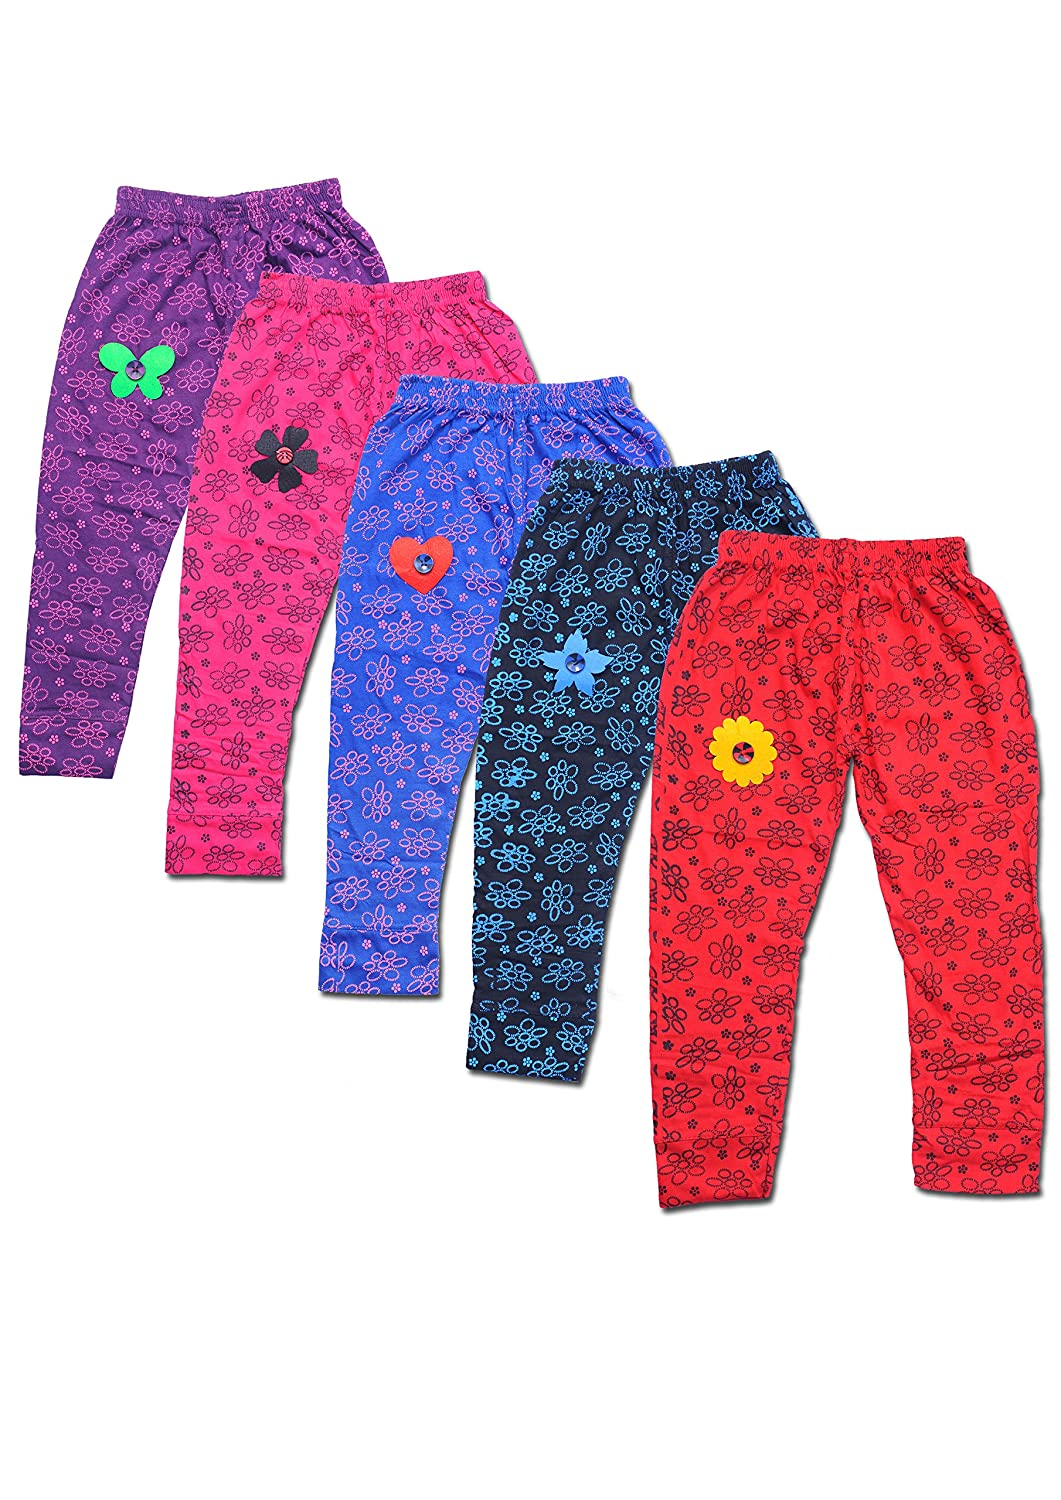 badf88ab Leggings For Girls: Buy Leggings For Girls online at best prices in ...